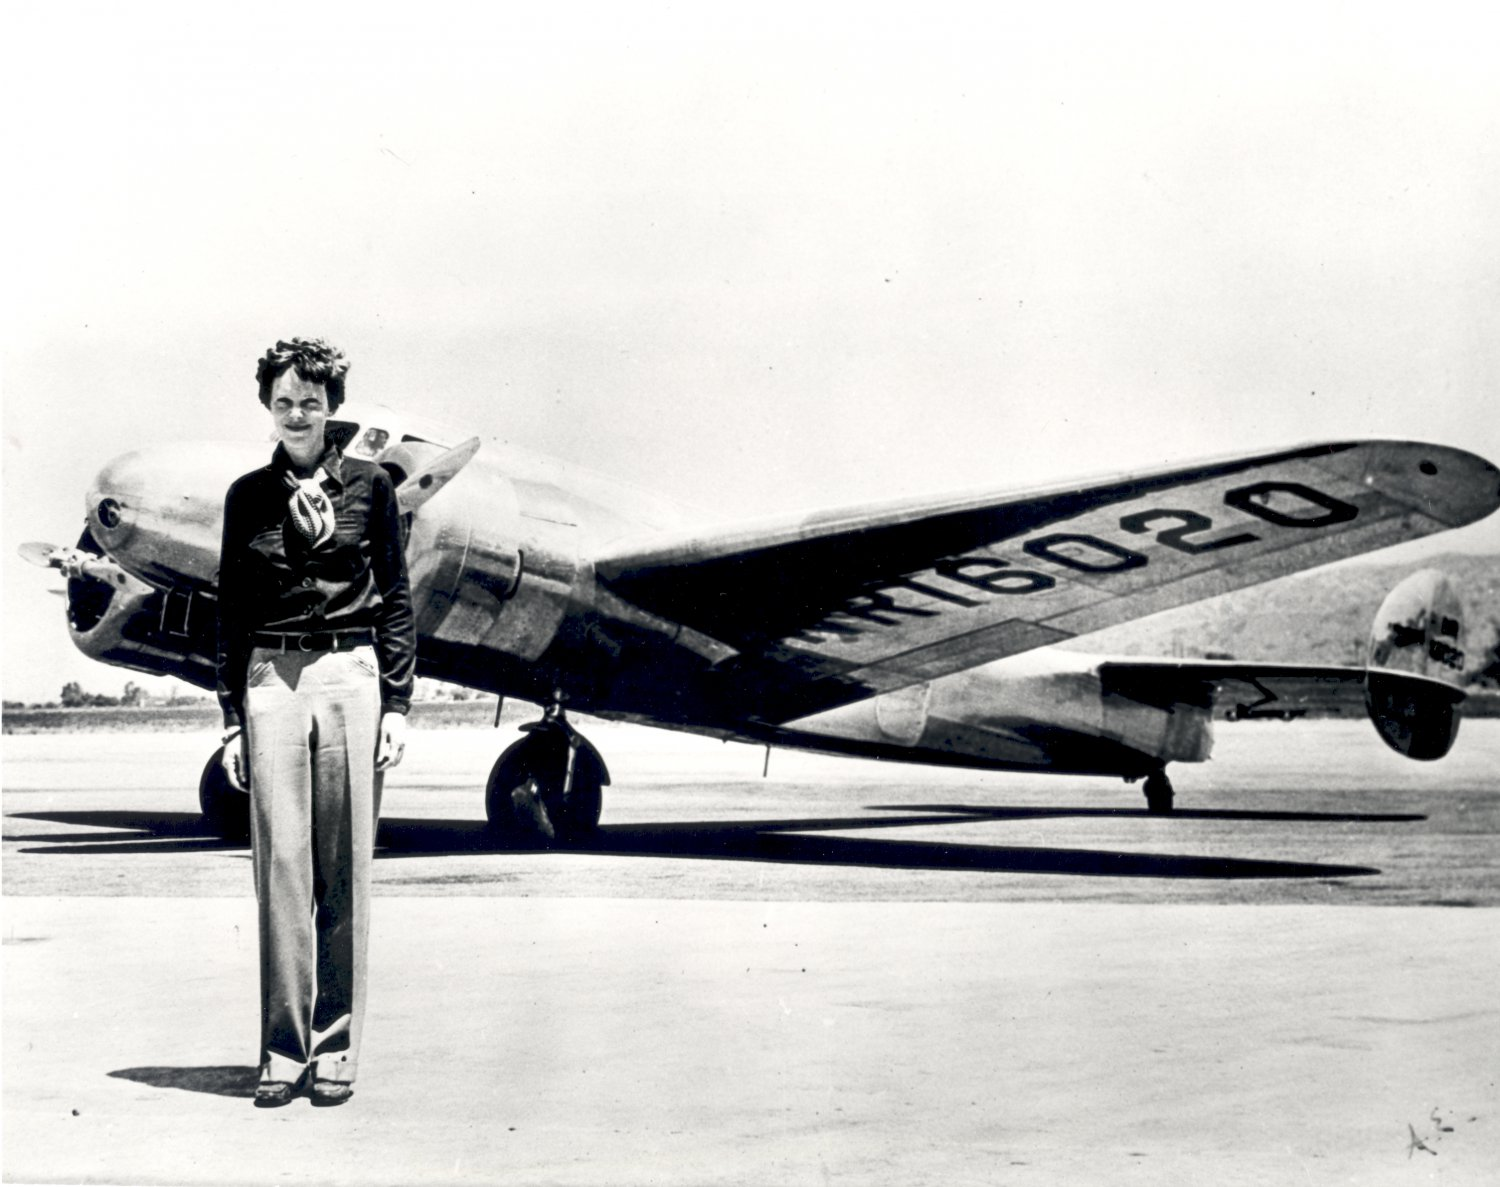 PILOT AMELIA EARHART STANDS IN FRONT OF LOCKHEED ELEKTRA - 8X10 PHOTO (EP-639)